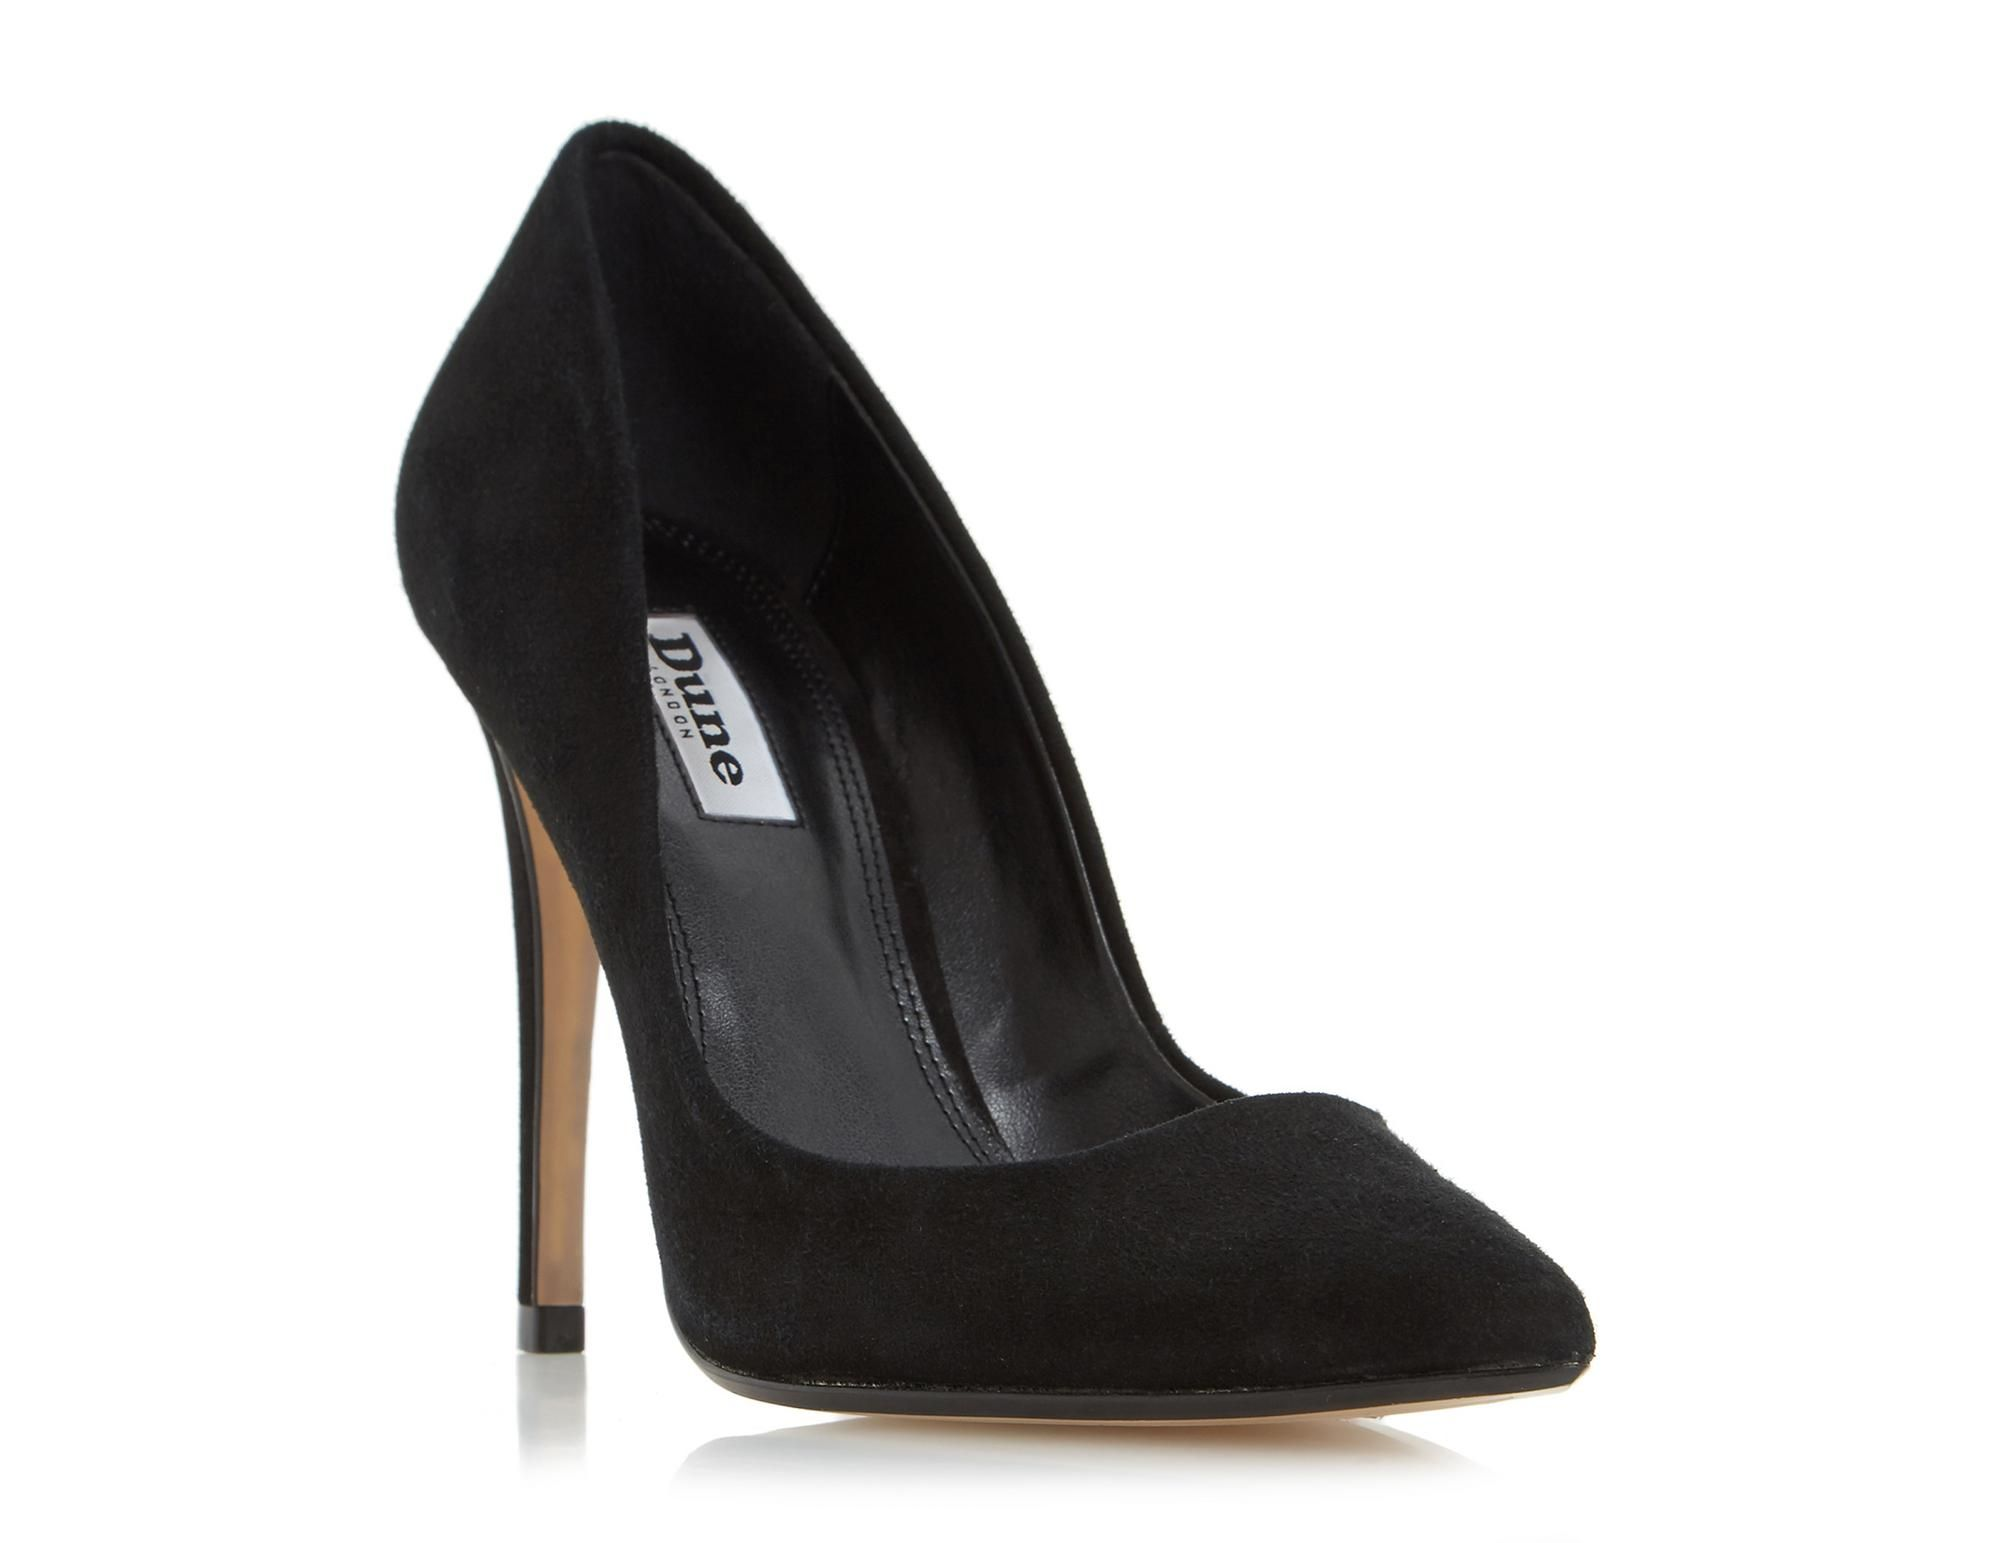 This timeless style is practical yet stylish and perfect for all occasions. An essential court shoe styled with a pointed toe and a slim high heel. Team it with cigarette trousers and a simple top for a smart casual look.